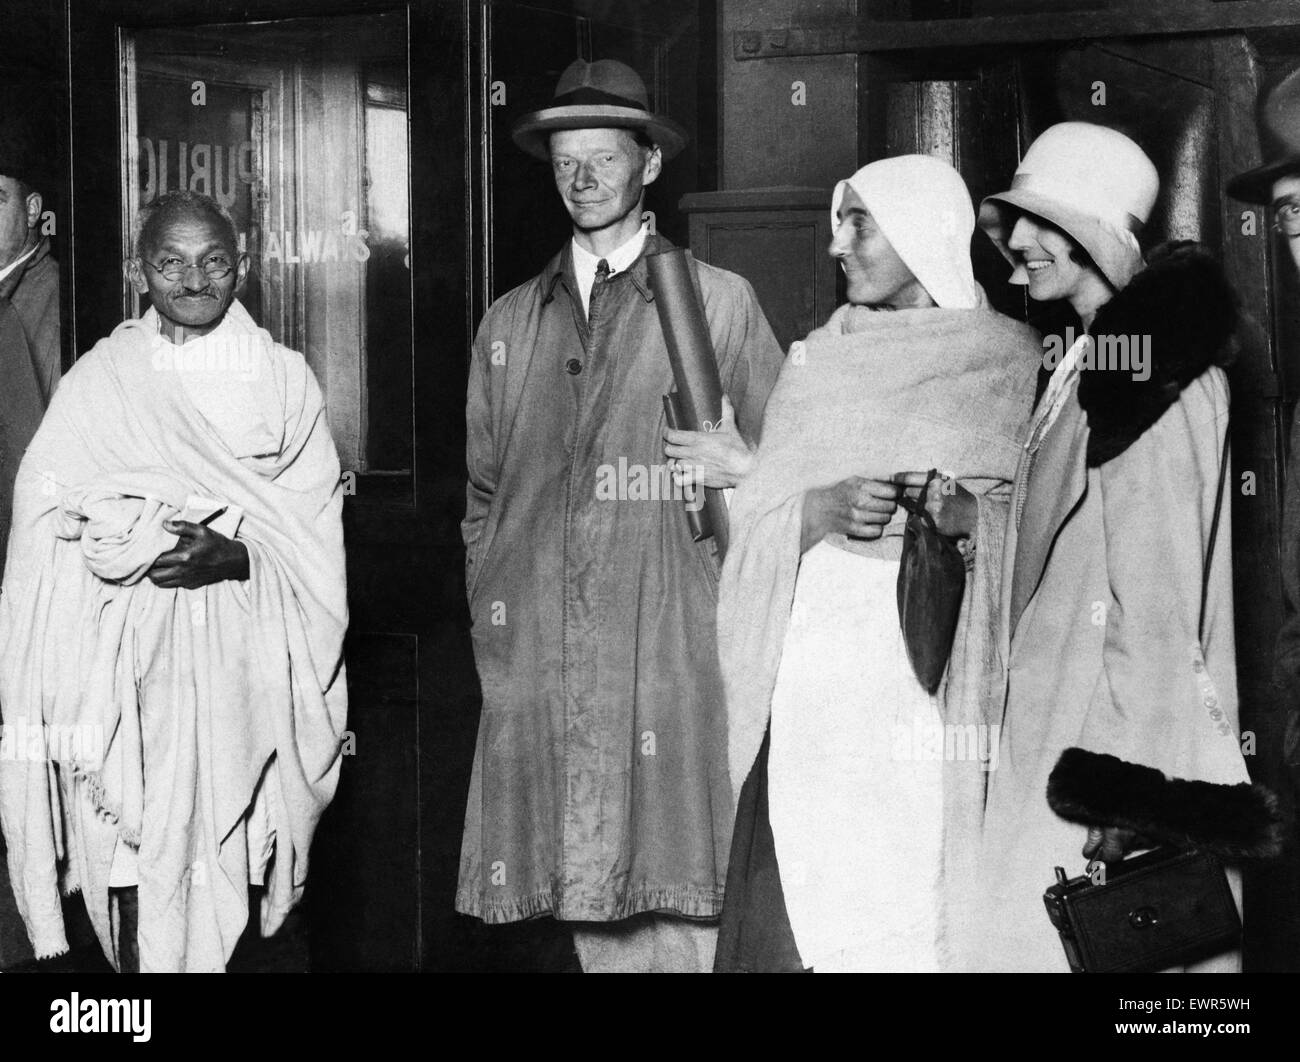 Mohandas 'Mahatma' Gandhi, leader of the  Indian independence movement in British-ruled India, pictured - Stock Image